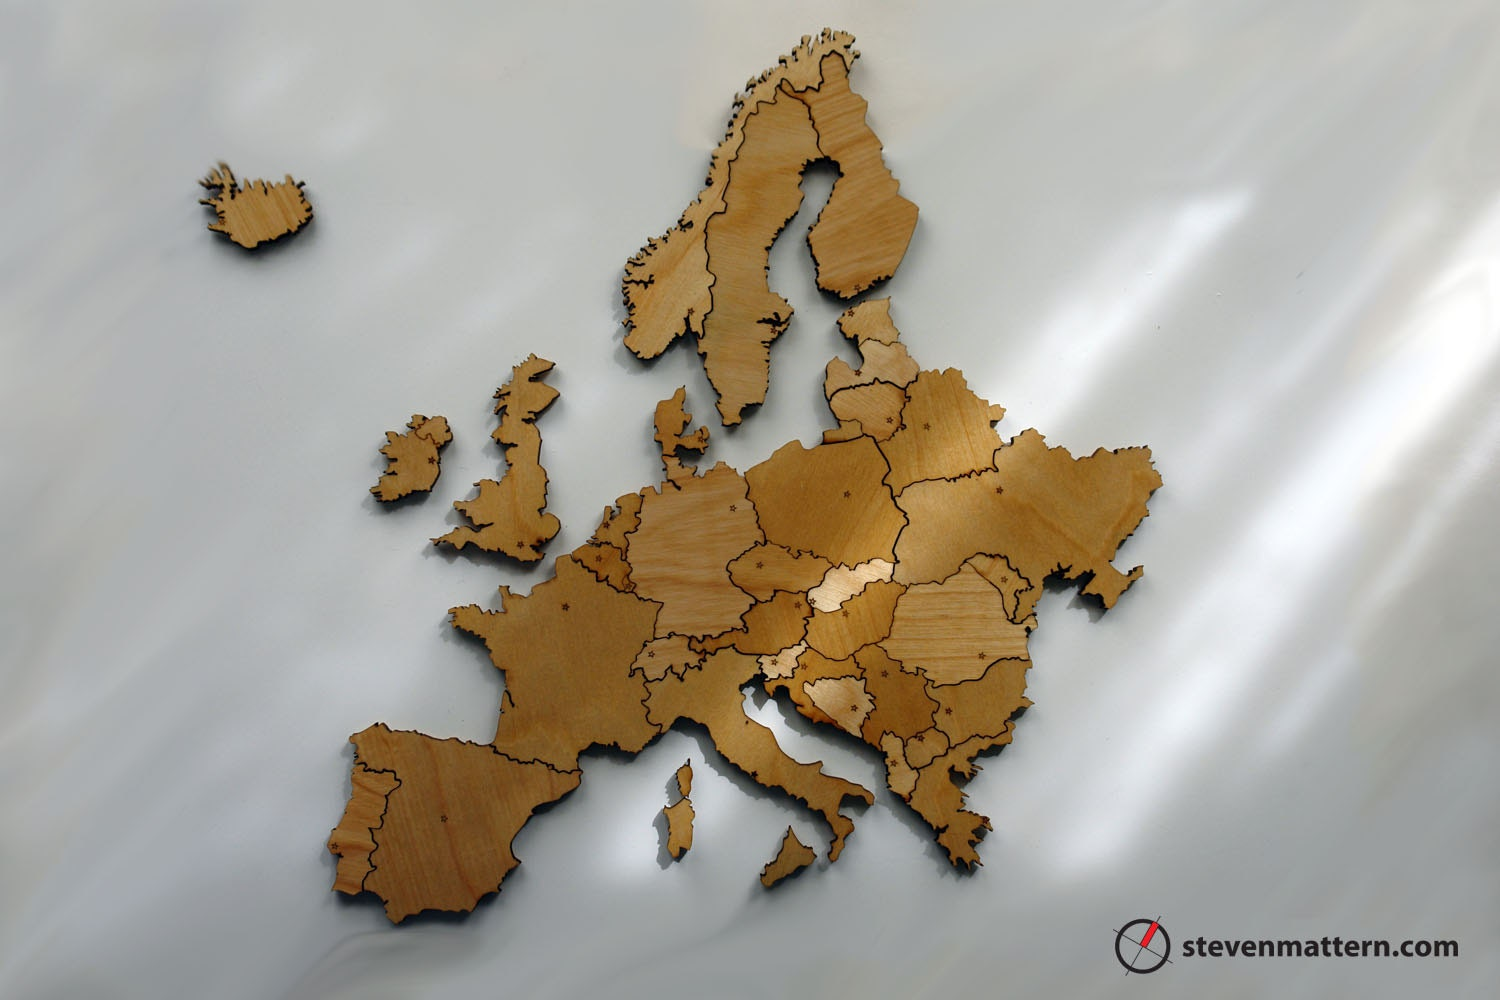 Europe Map Puzzle Birch Plywood